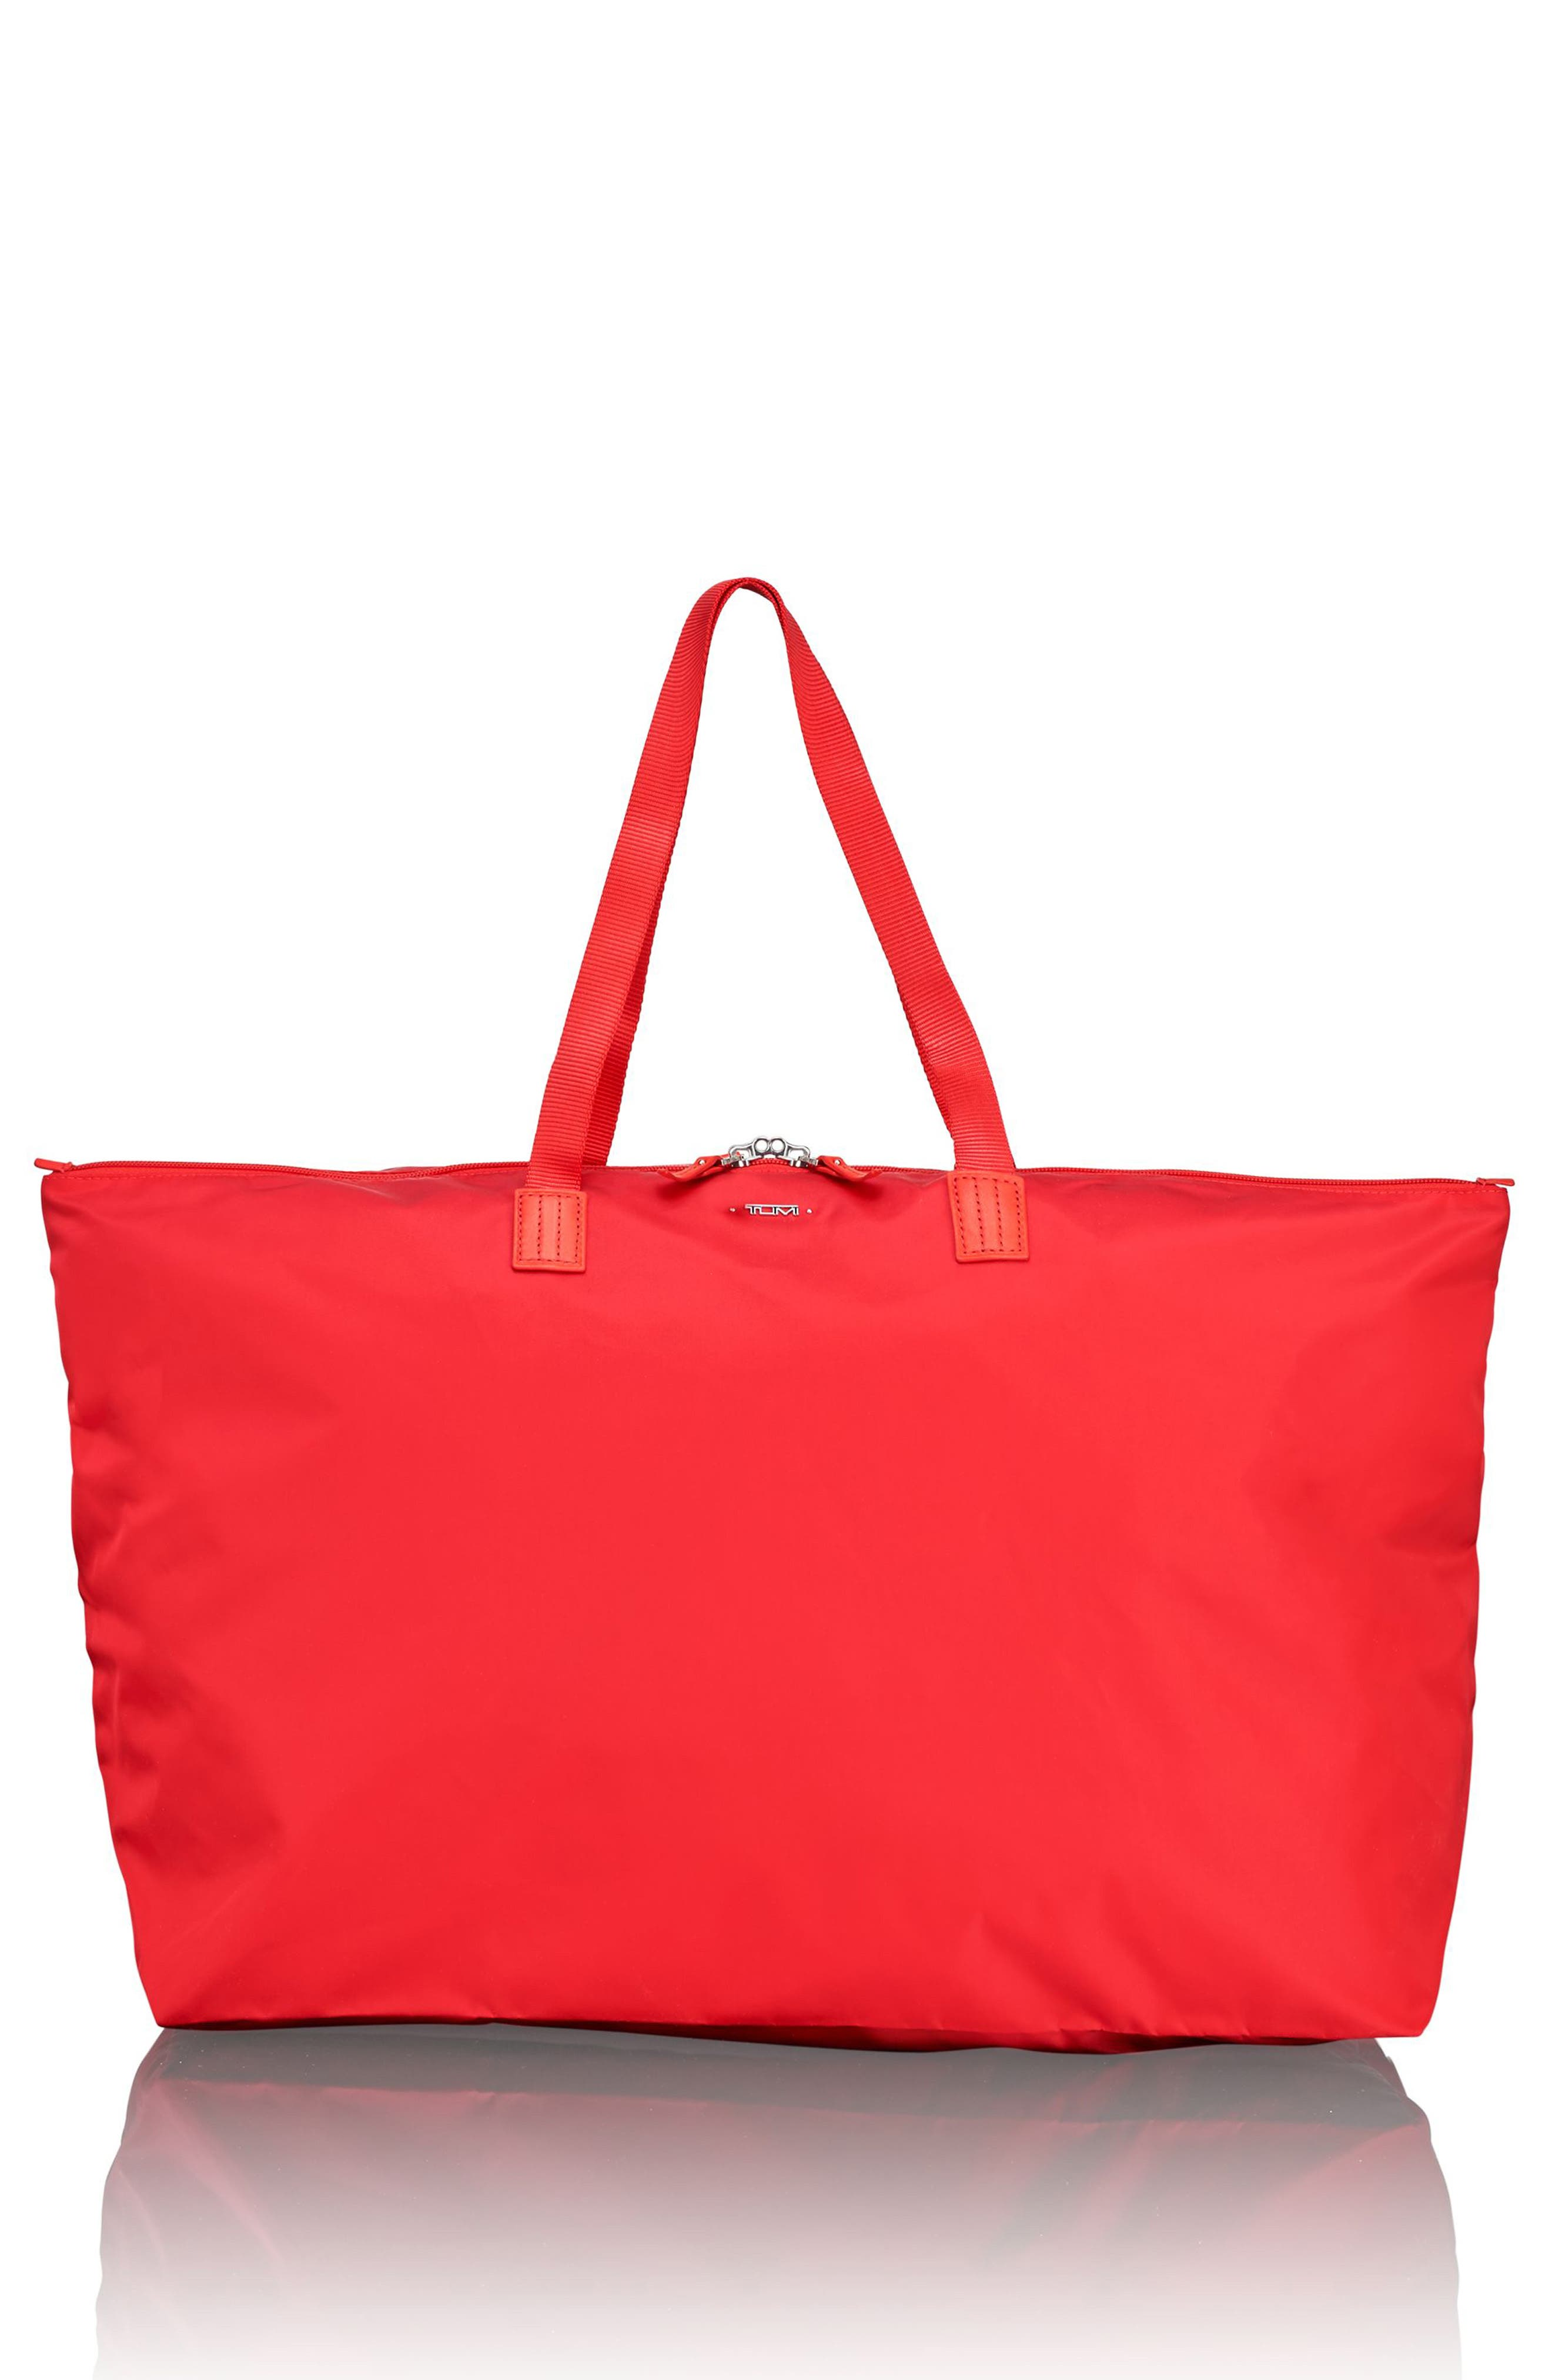 Alternate Image 1 Selected - Tumi 'Just in Case' Nylon Travel Tote